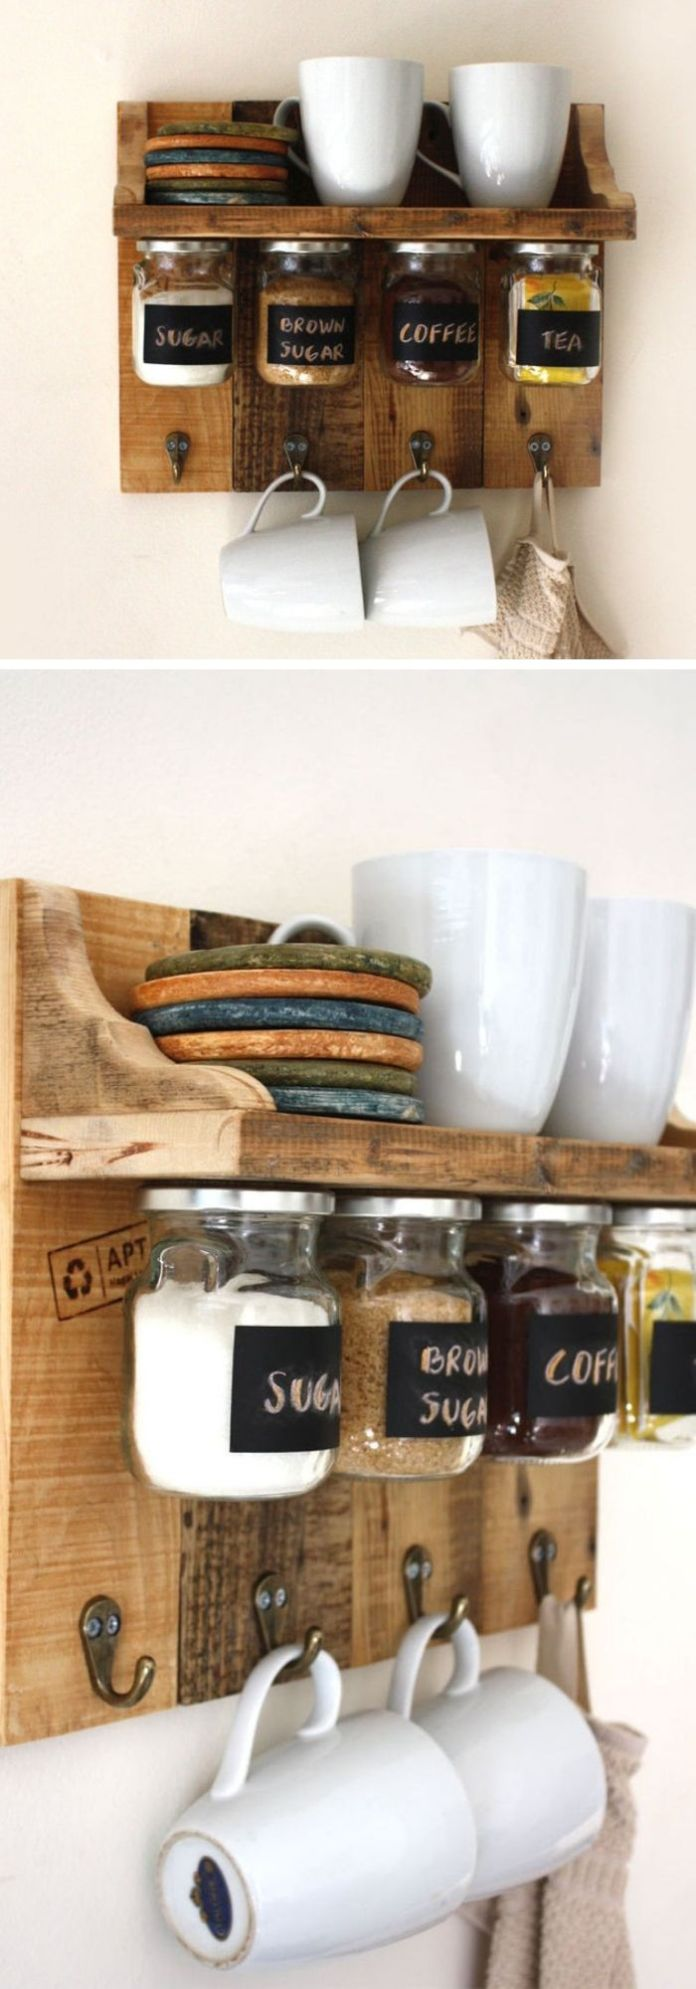 Gorgeous spices or coffee shelf with hanging jars